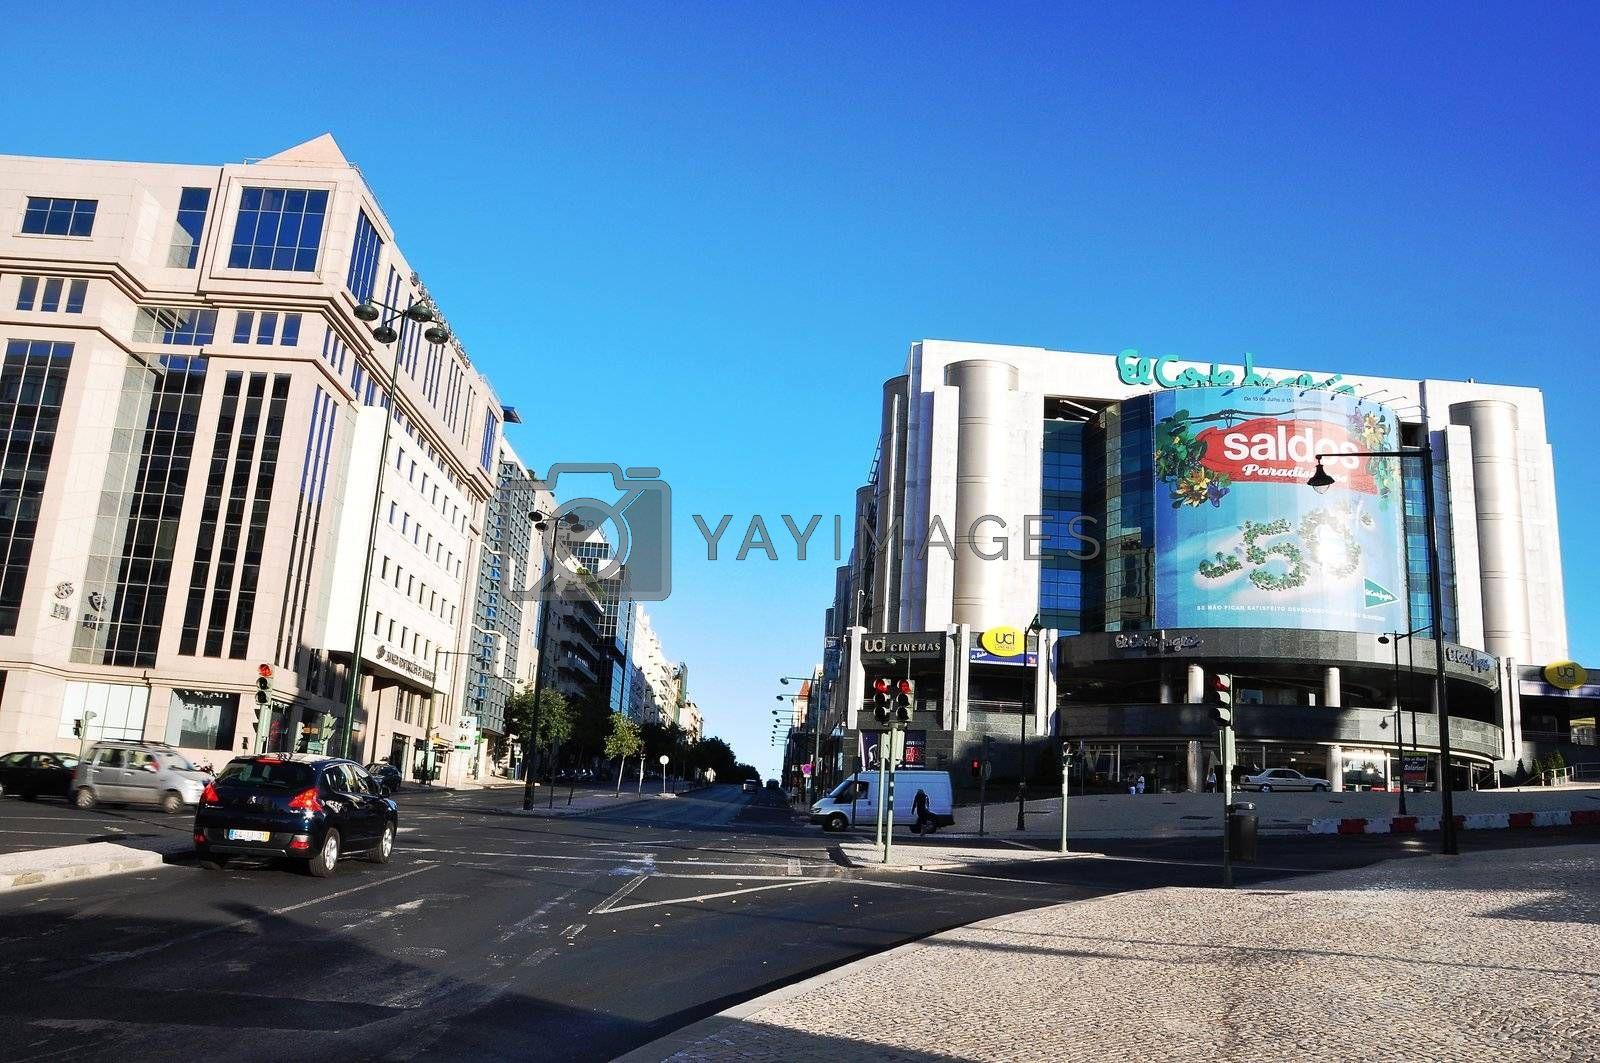 Royalty free image of architecture of Lisbon Portugal by vas25